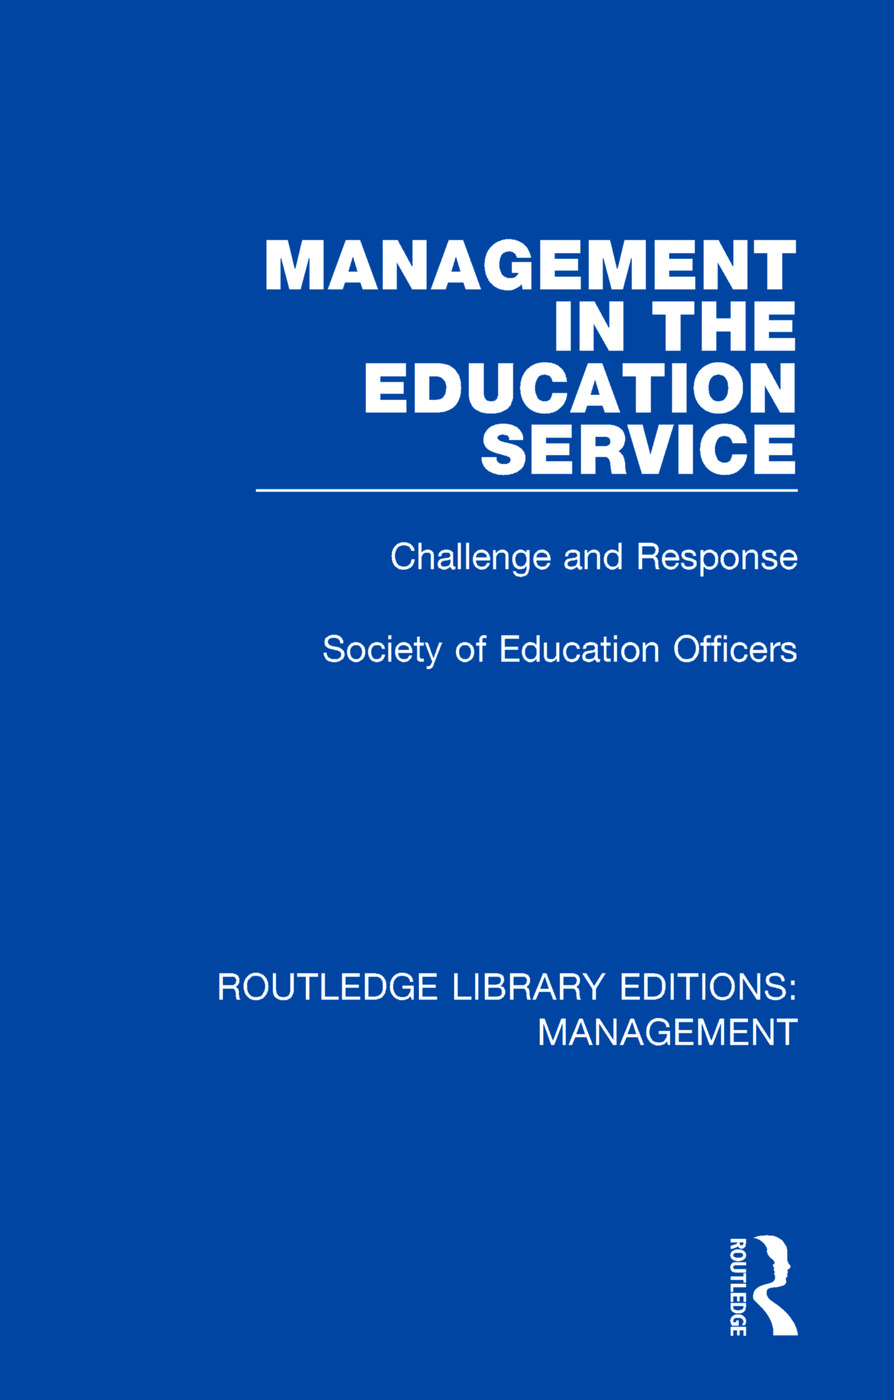 Management in the Education Service